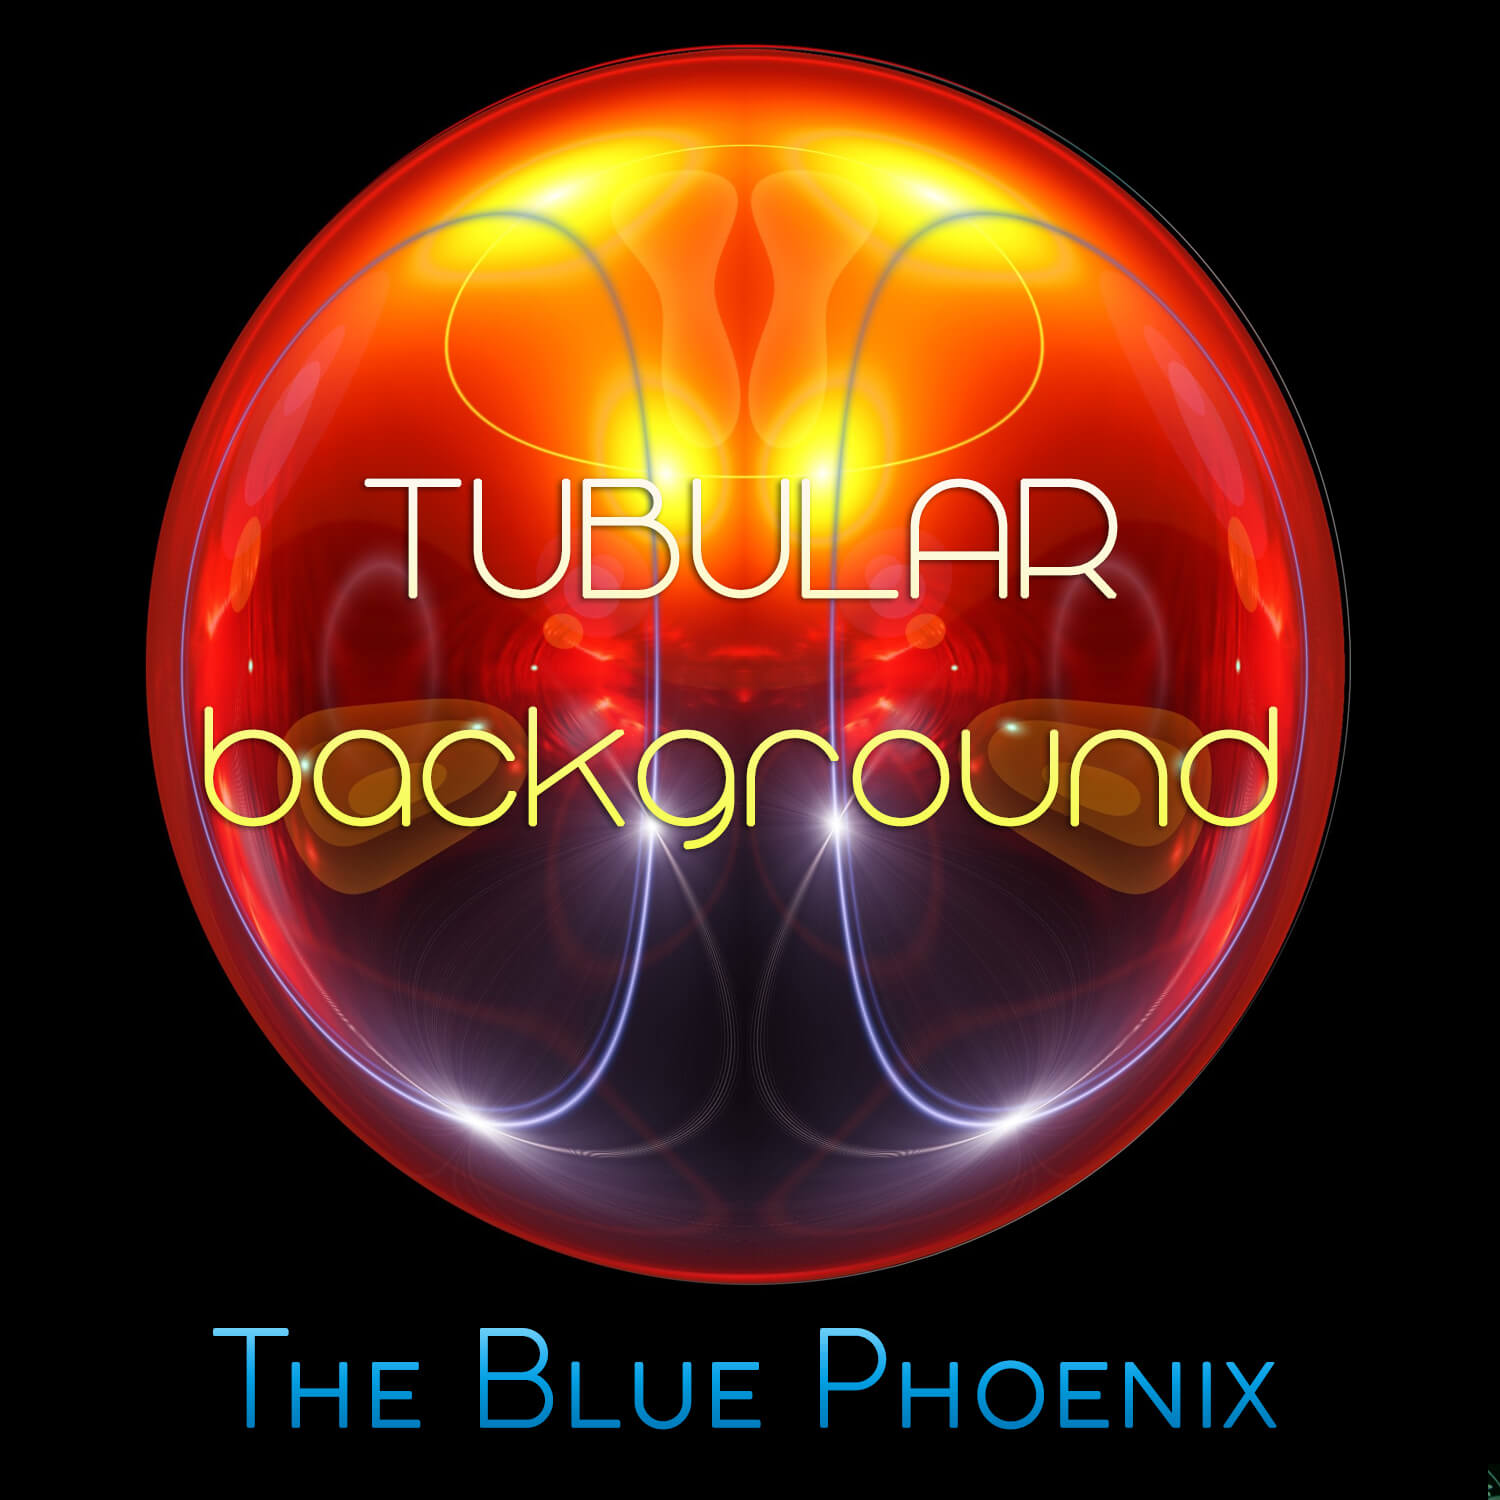 Abstract image of luminous orb as cover image for Blue Phoenix album Tubular Background